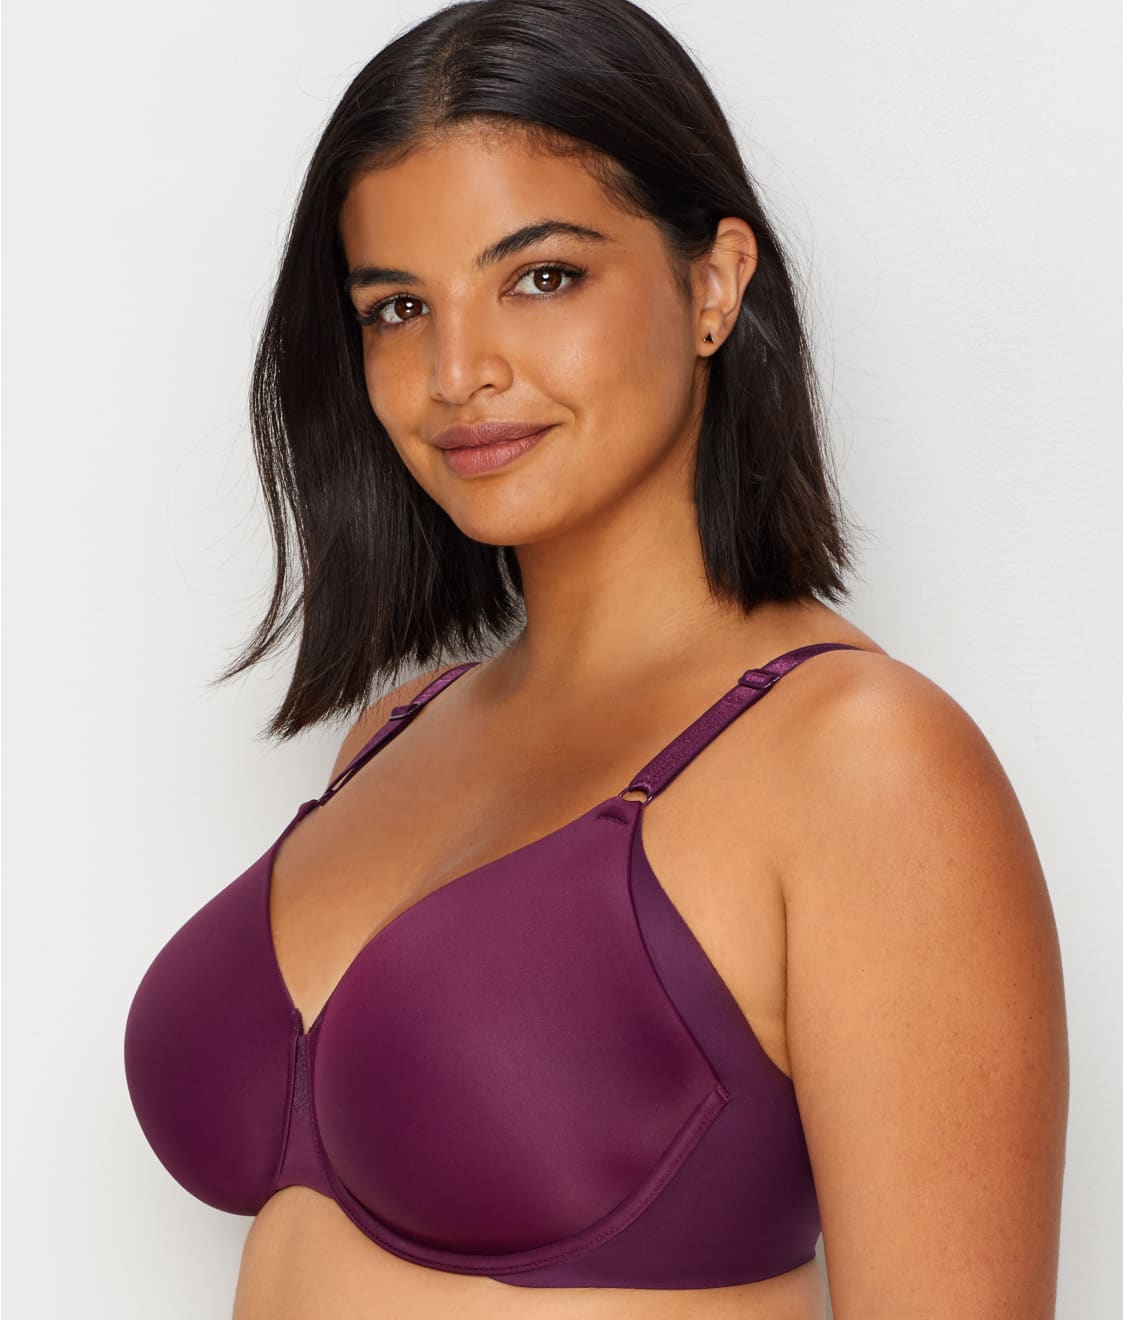 bf2ef9f620958 See No Side Effects™ T-Shirt Bra in Potent Purple